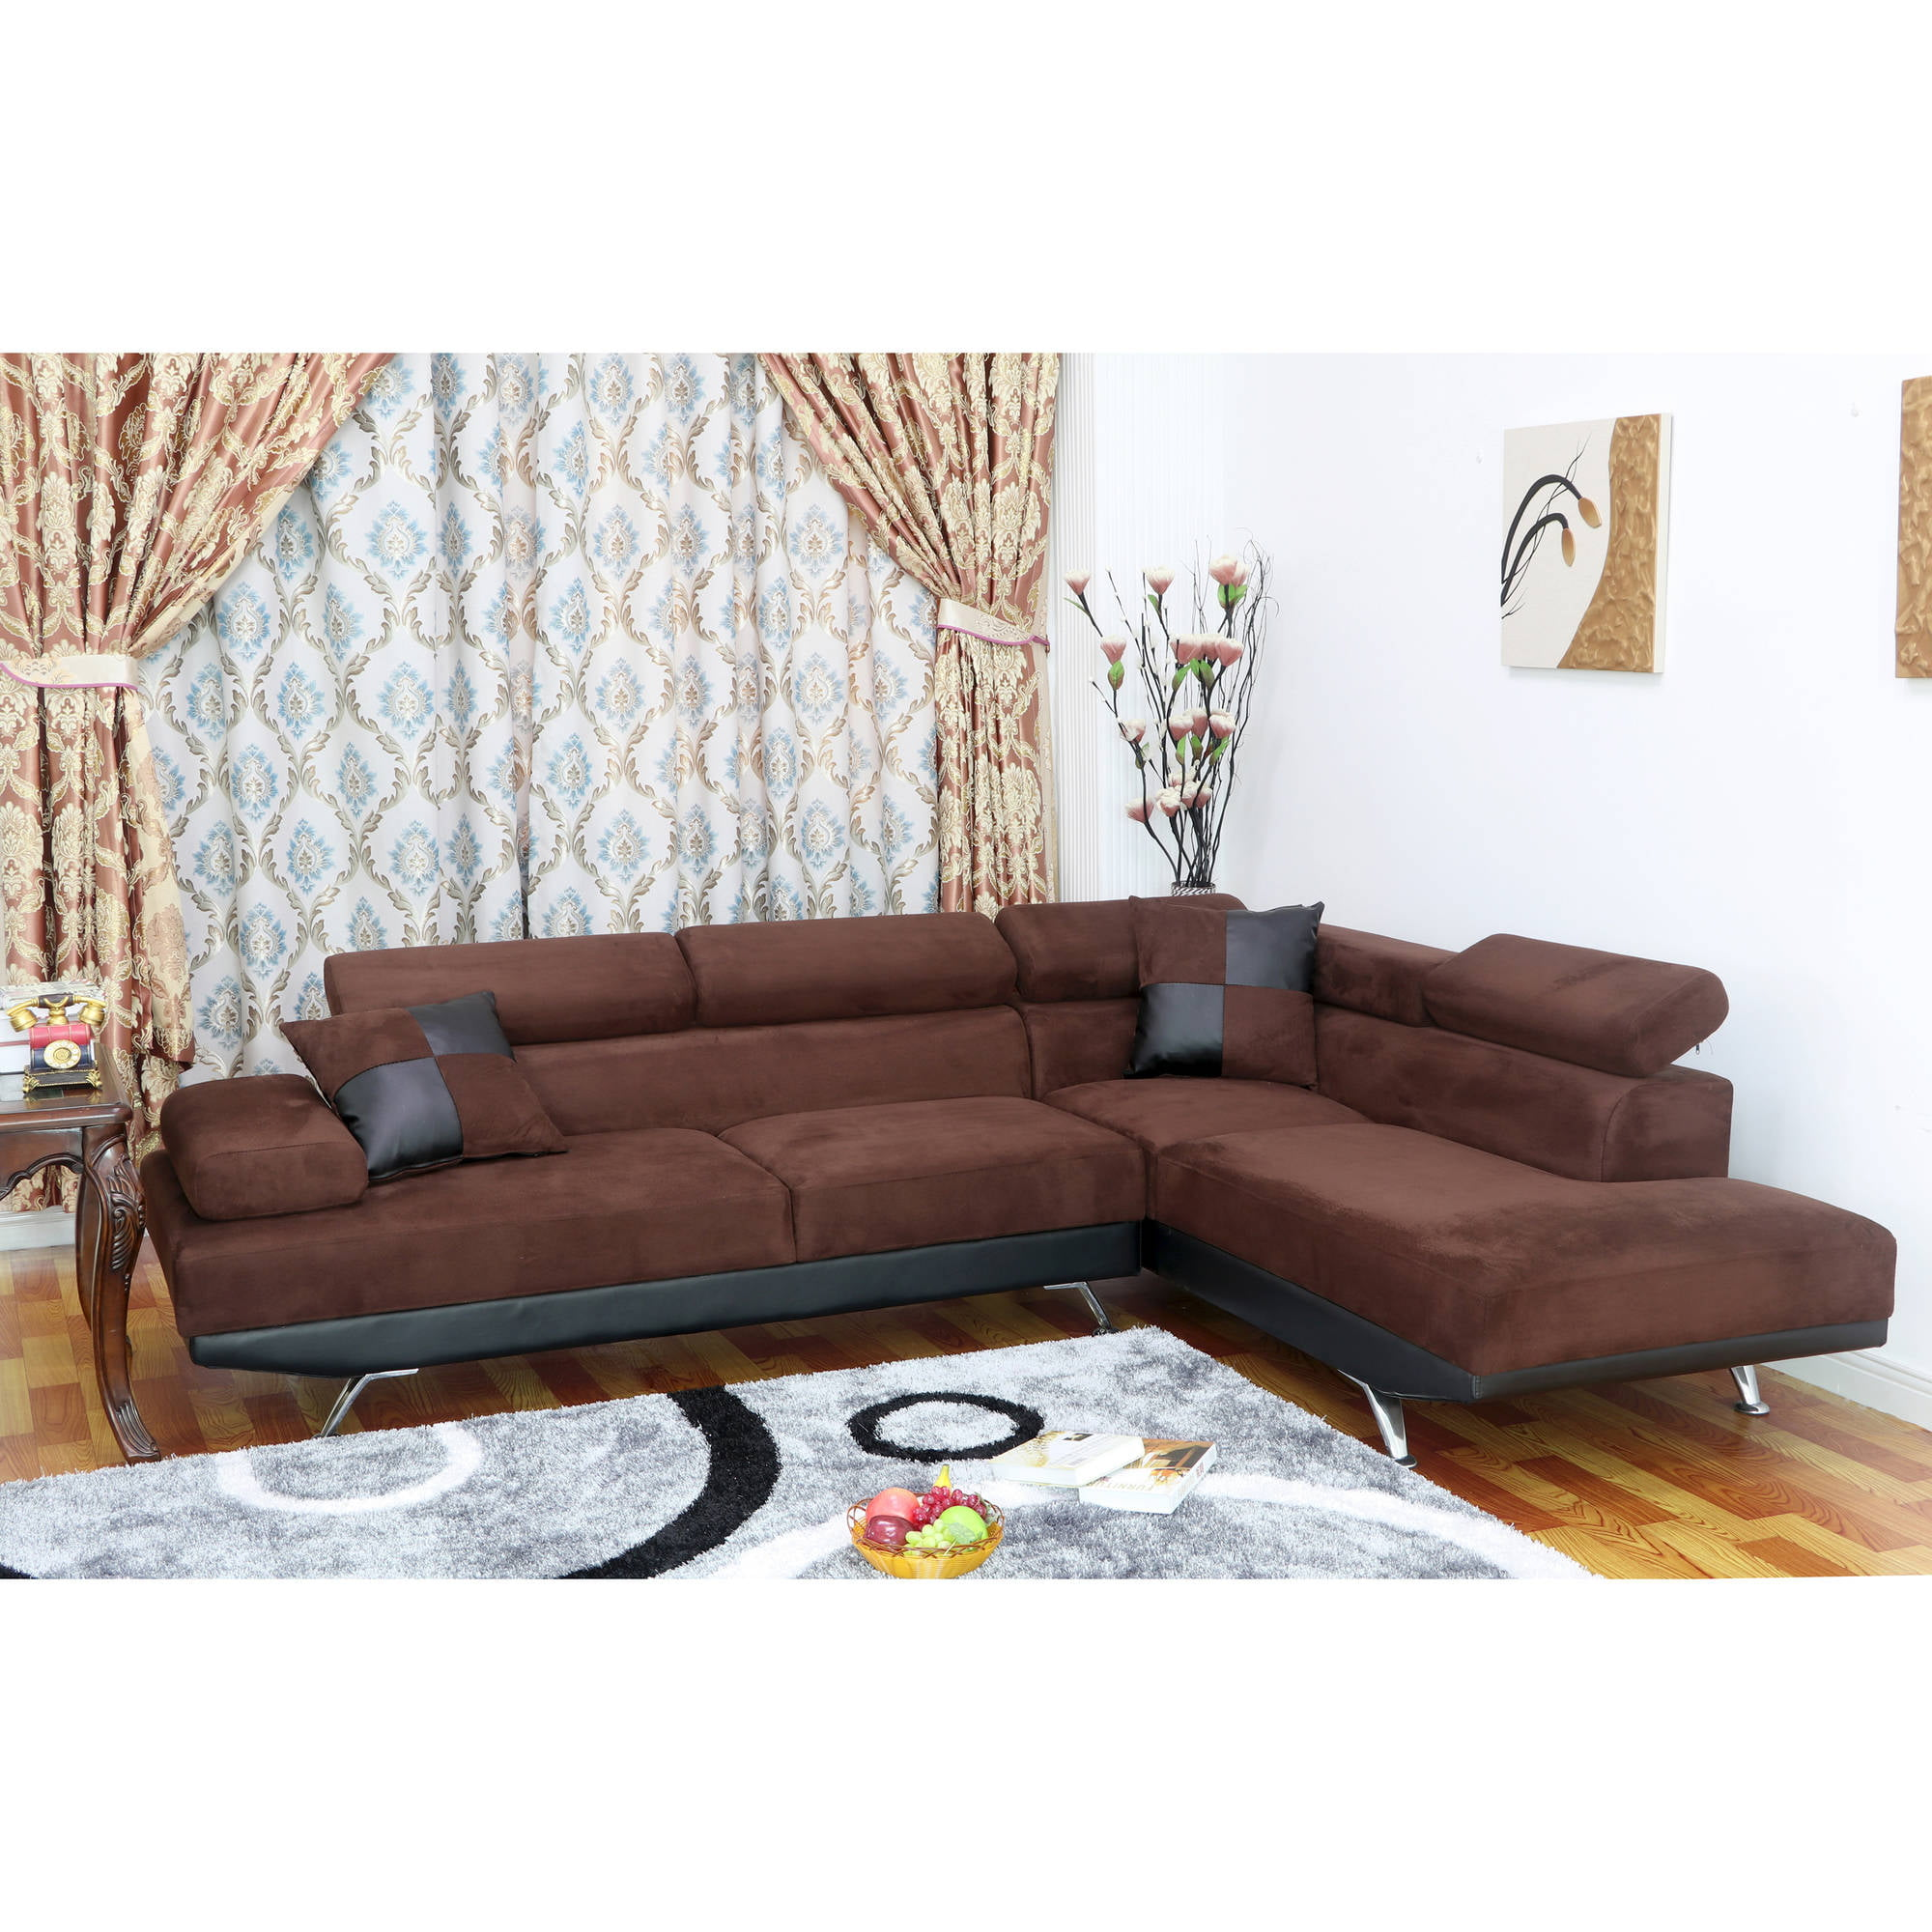 piece sectional chaise leather com faux sofa set ip white walmart ufe sofia modern facing right